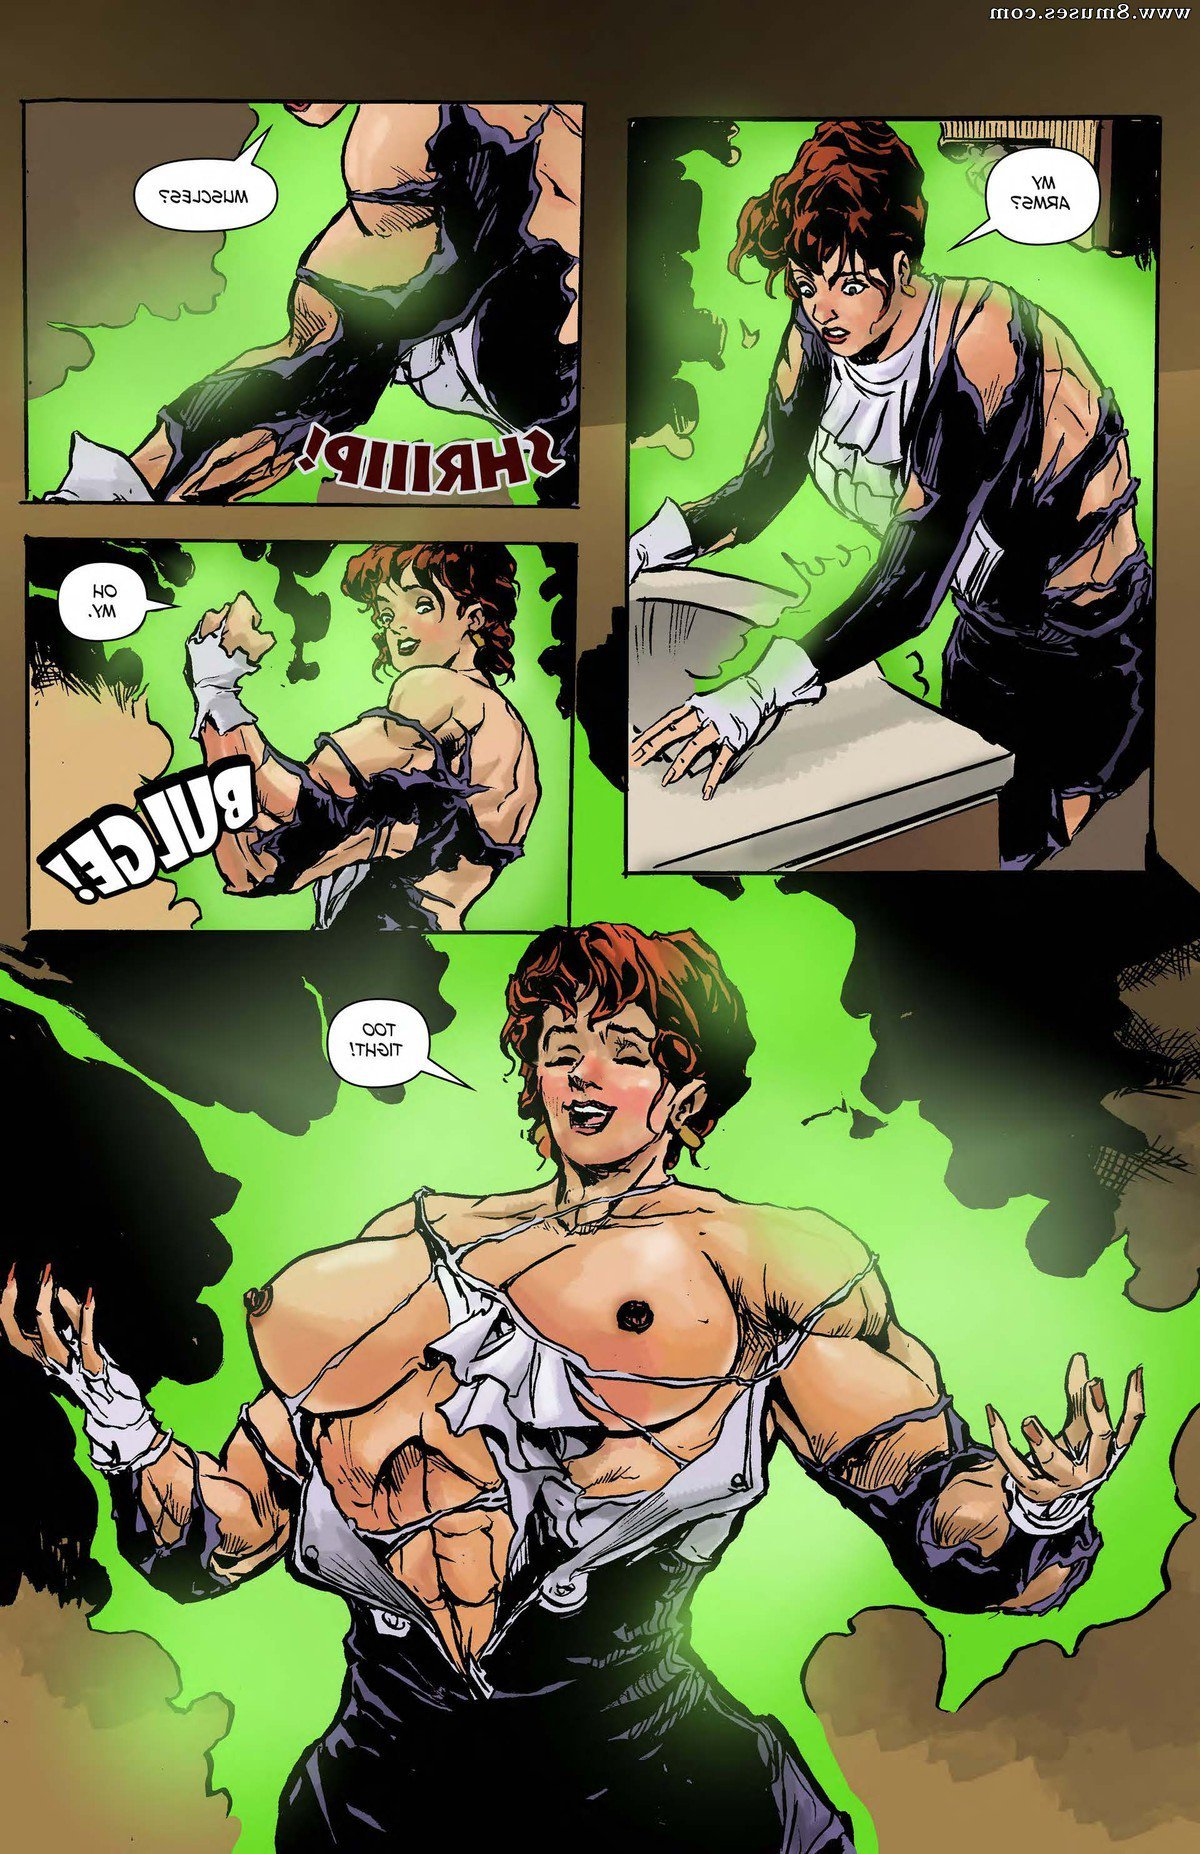 MuscleFan-Comics/A-Touch-of-the-Vapours/Issue-1 A_Touch_of_the_Vapours_-_Issue_1_7.jpg